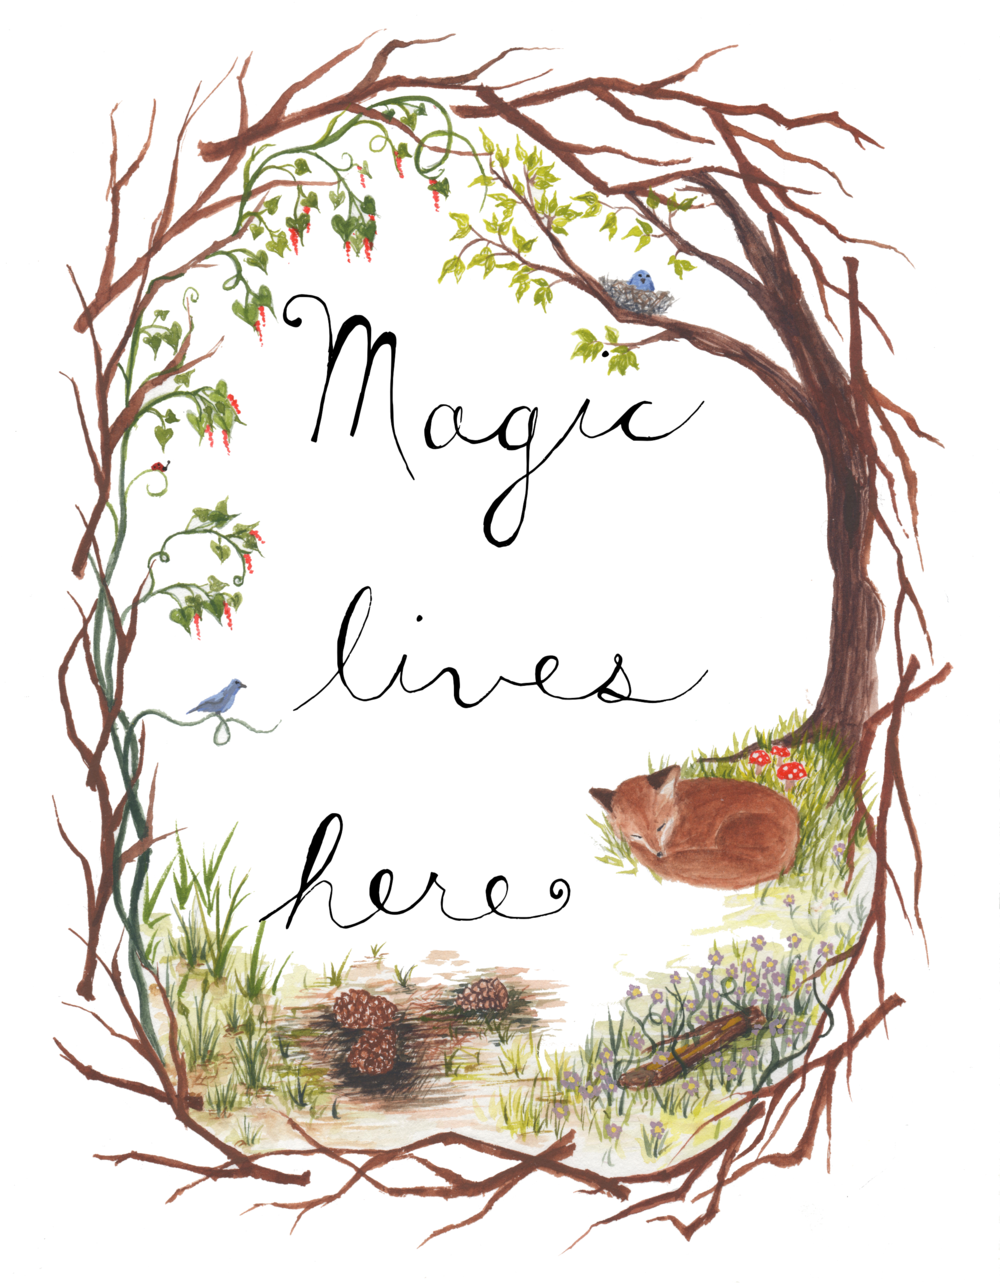 magic lives here-12.16.png